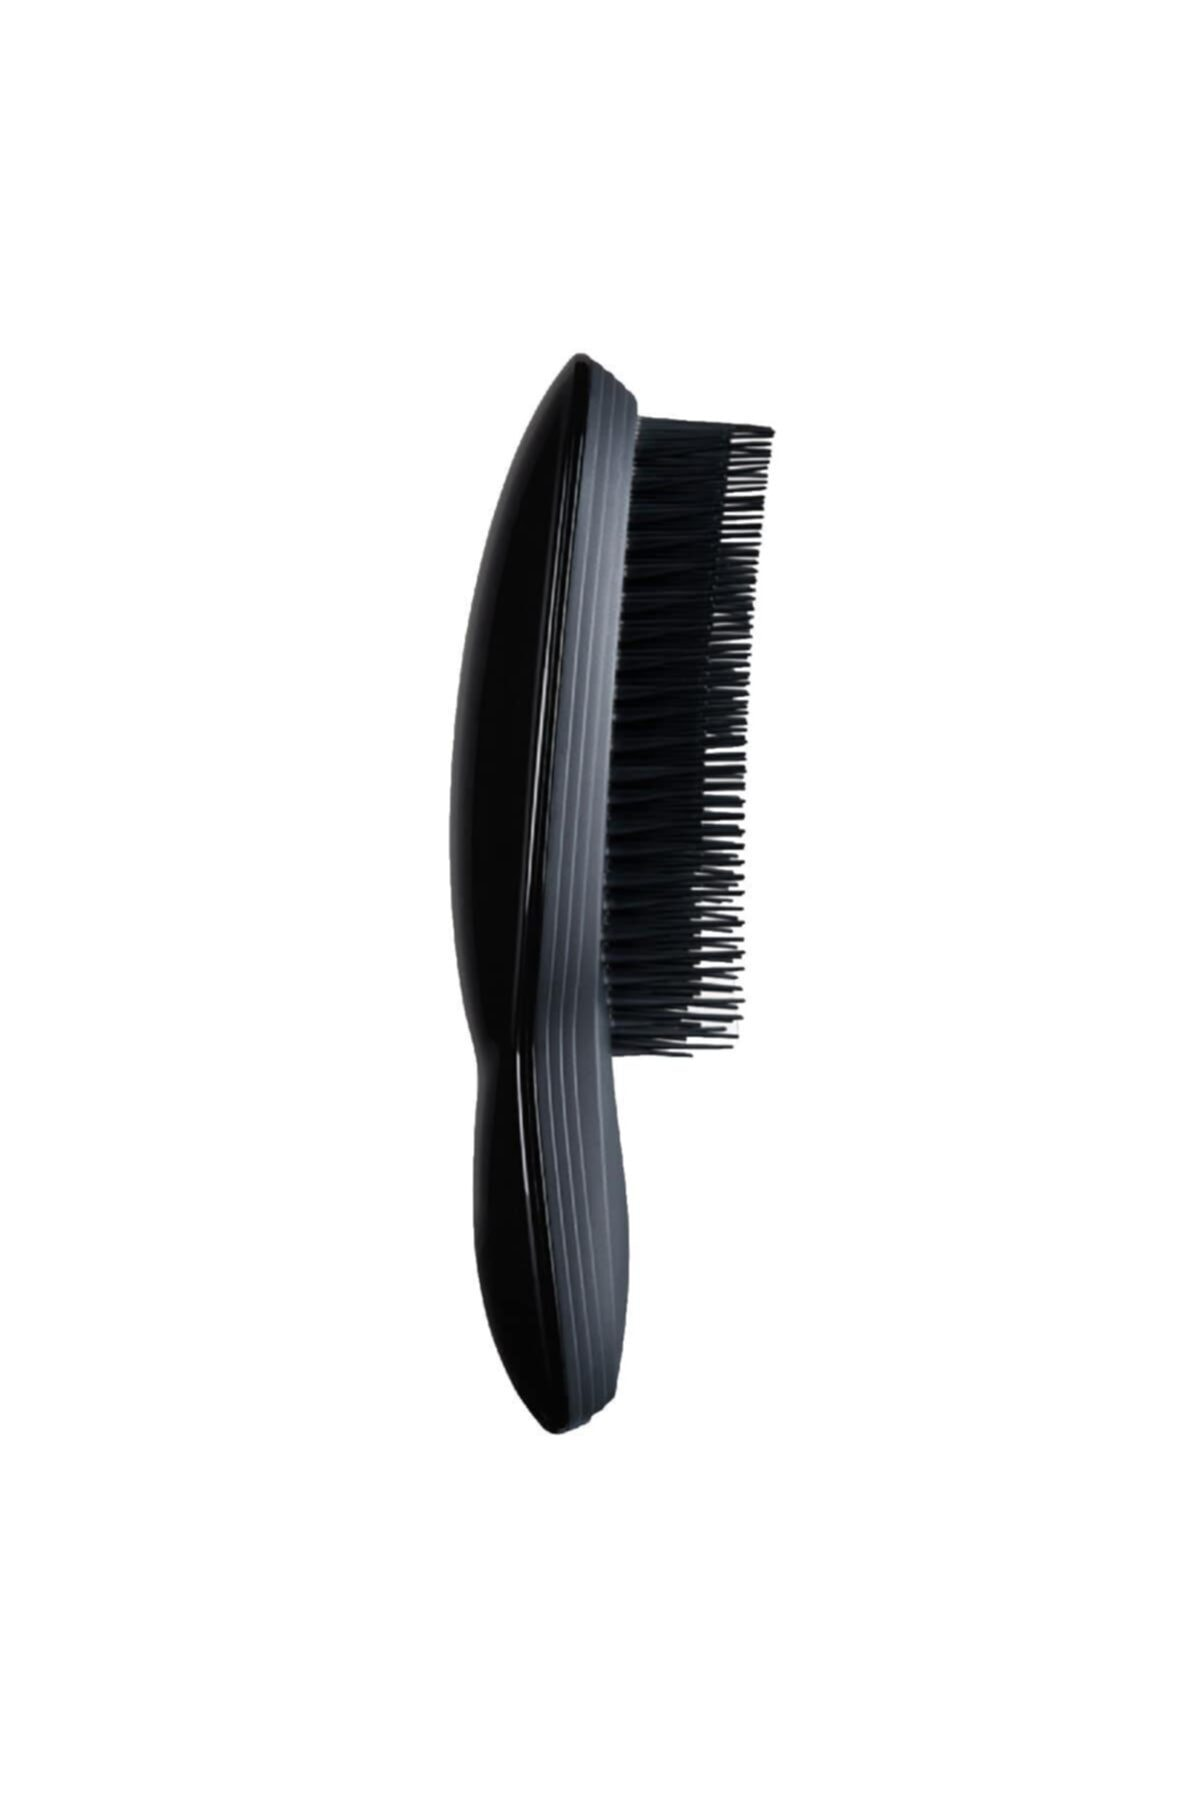 Tangle Teezer The Ultimate Siyah Saç Fırçası. 1